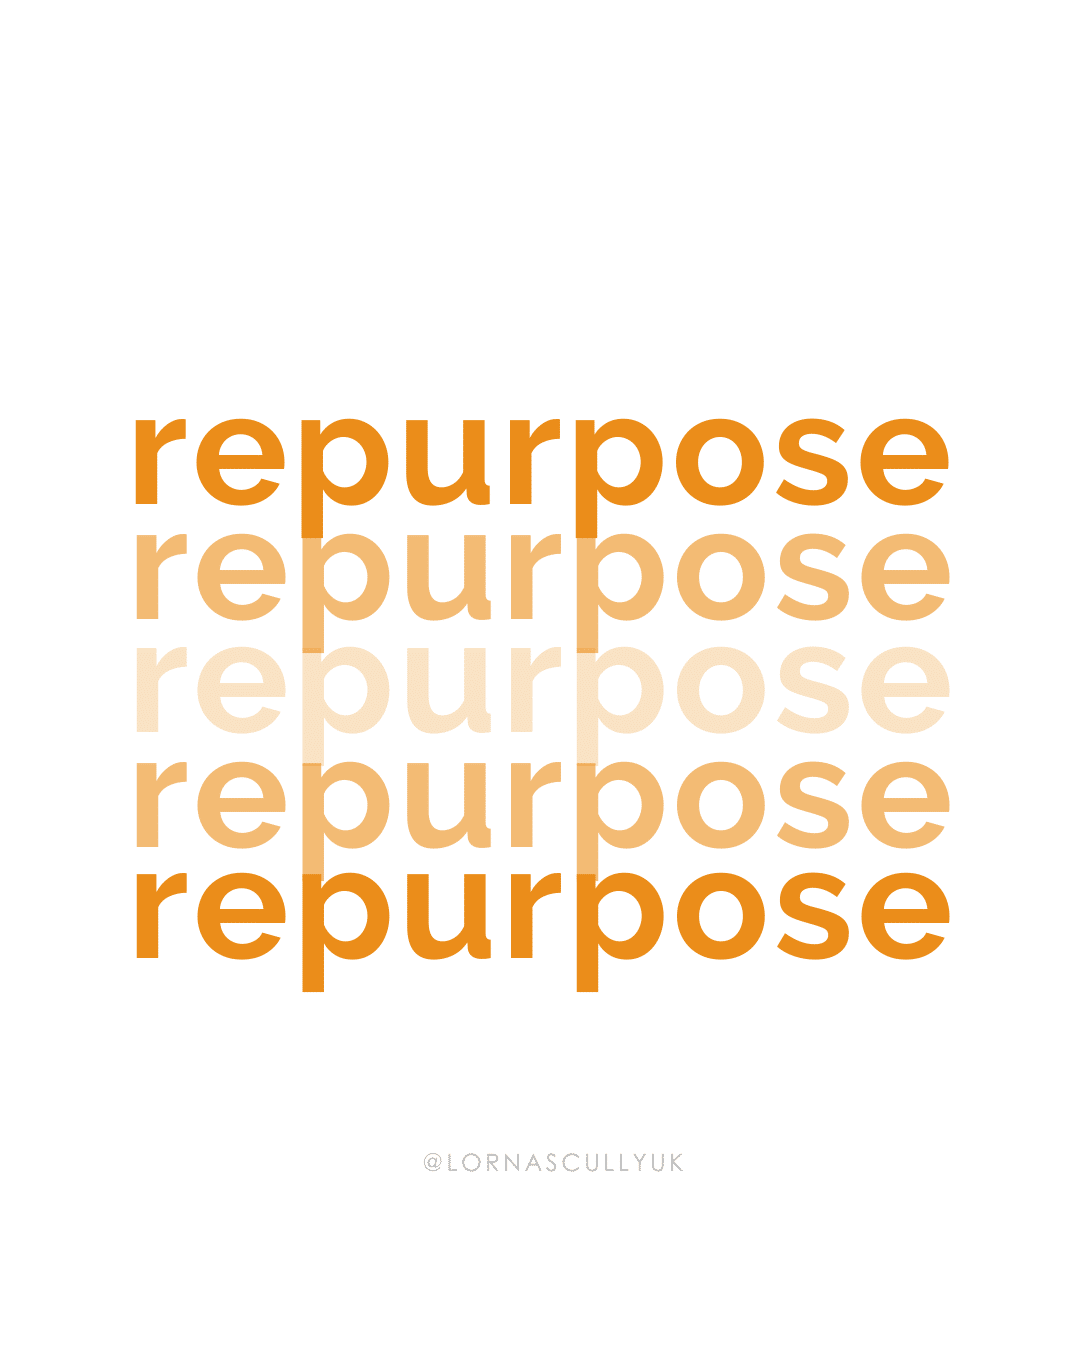 Repurposing Content For Small Businesses | Content Marketing | Marketing Ideas | The word Repurpose in various orange shades repeated 5 times